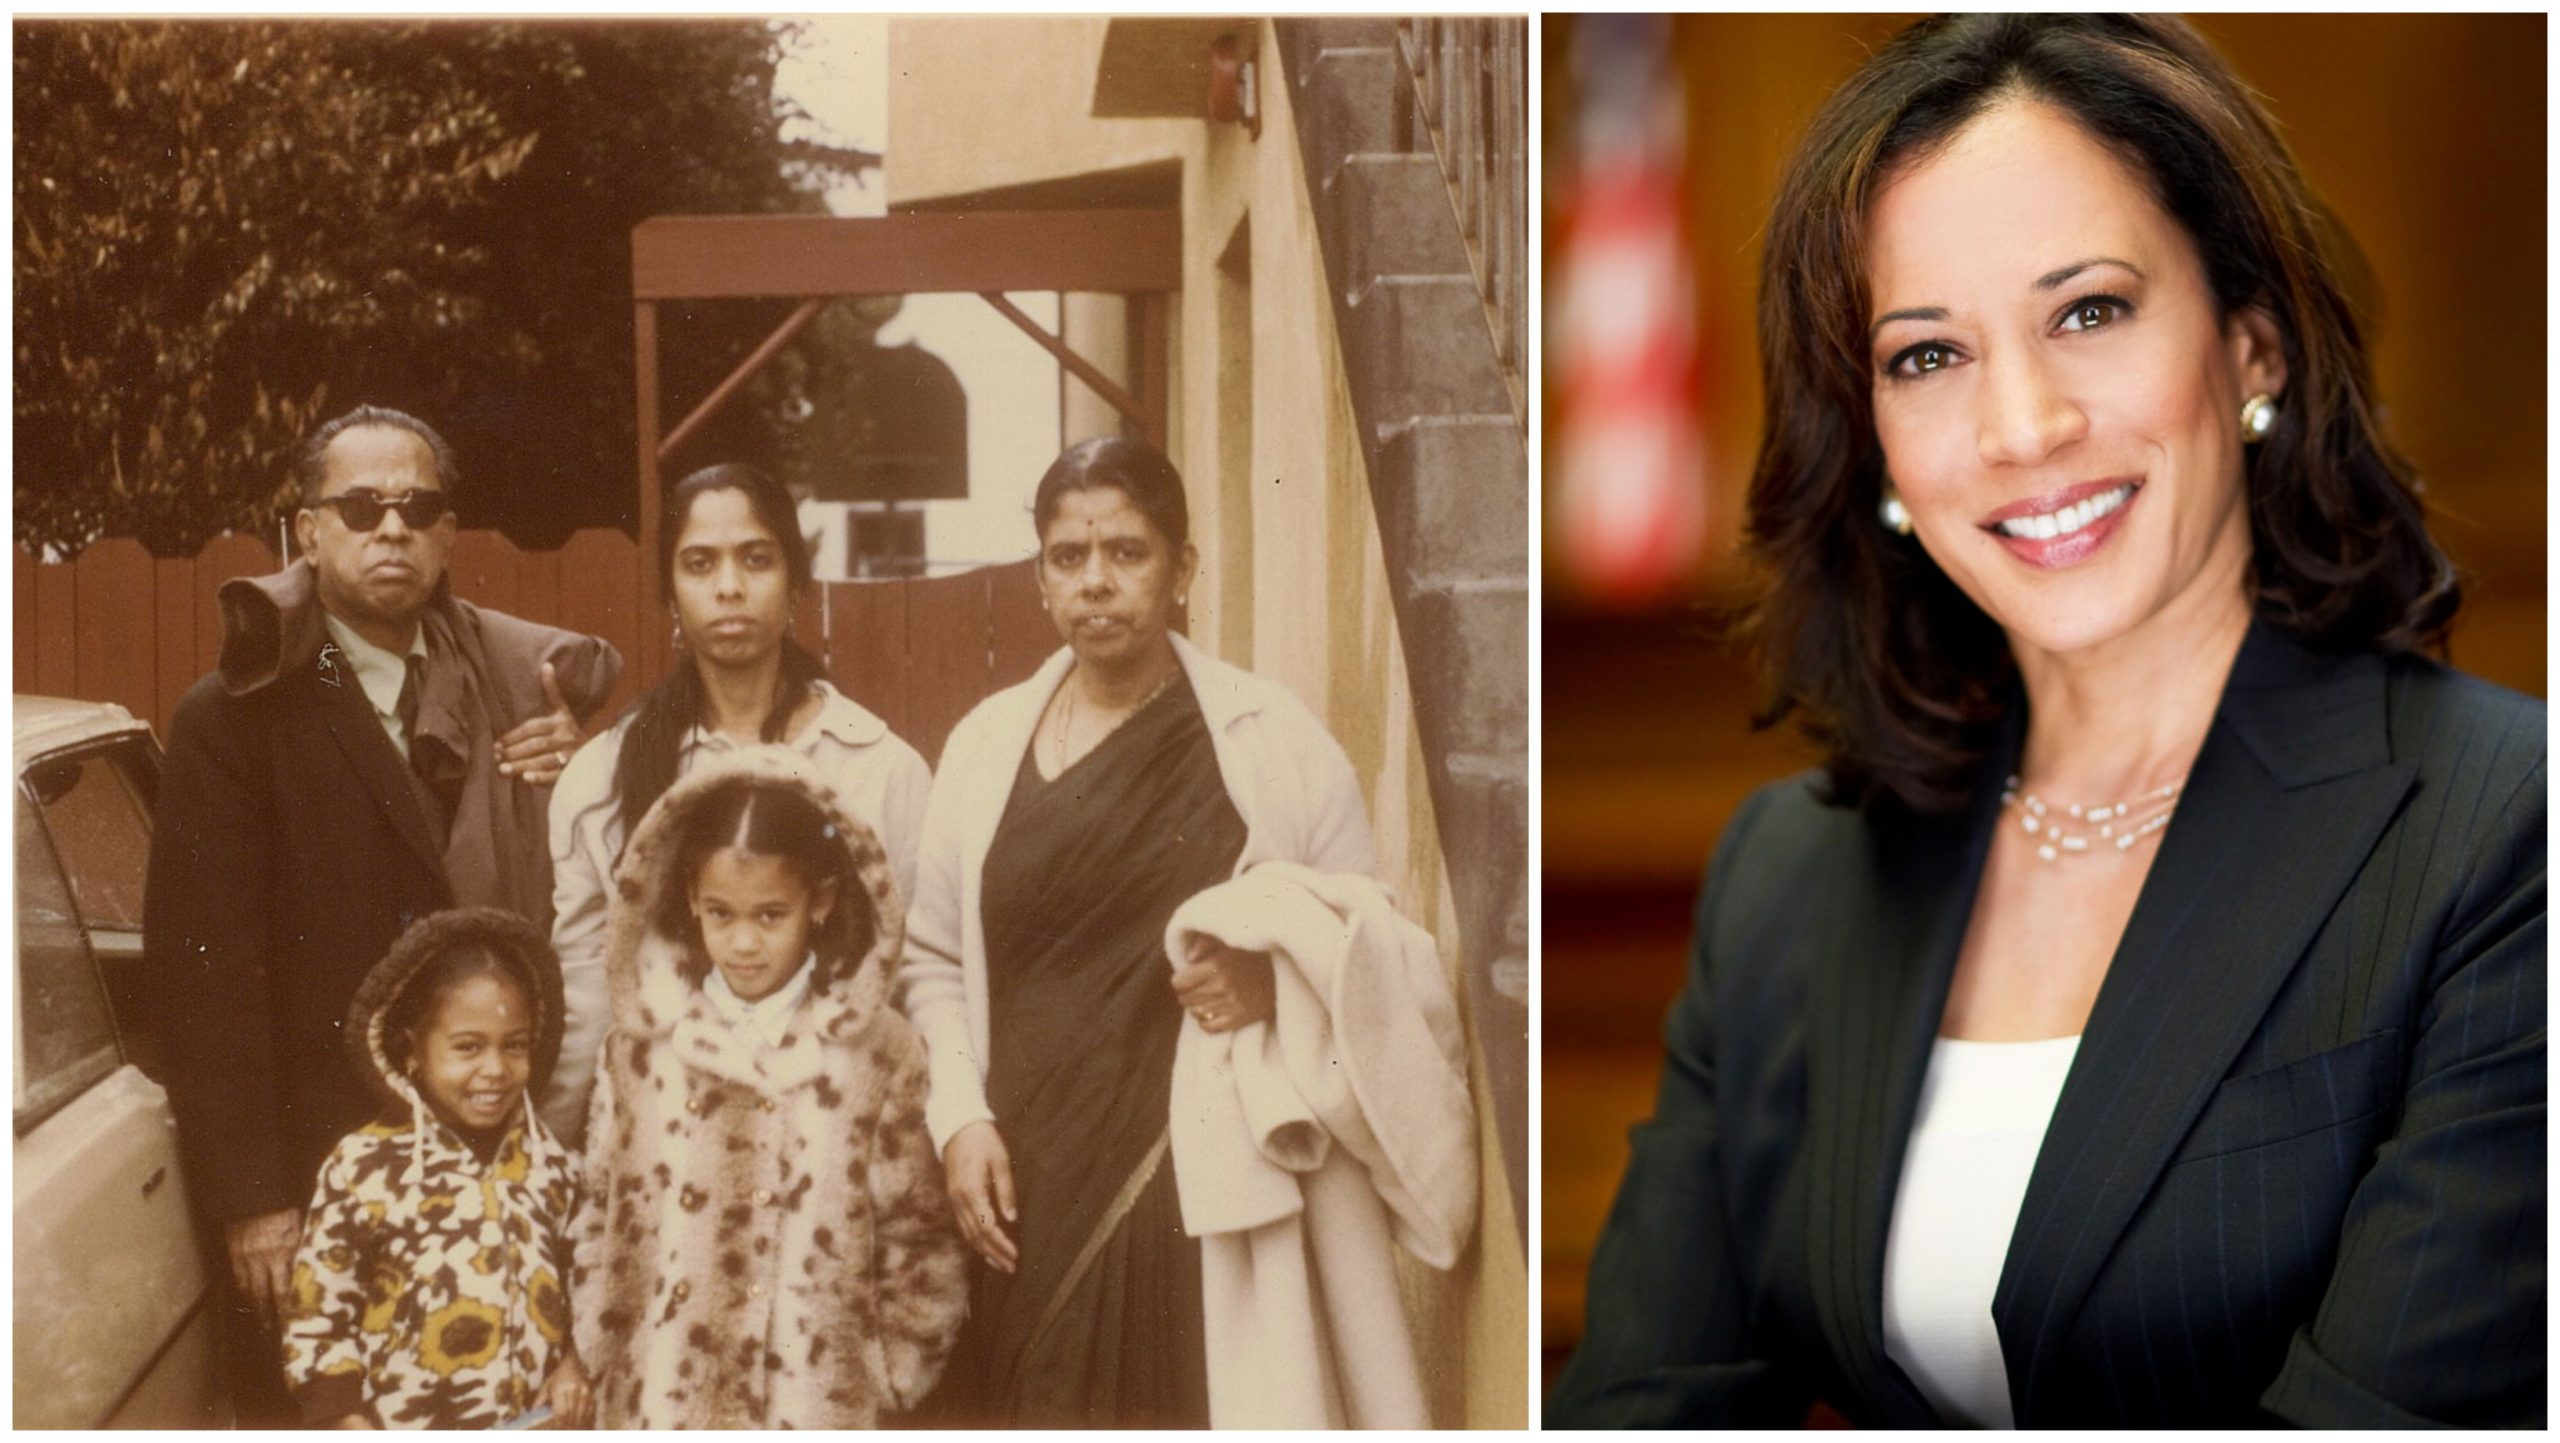 Kamala Harris, The Complexity Of Her Identity And How It Plays Into The Upper-Caste Hindu Narrative